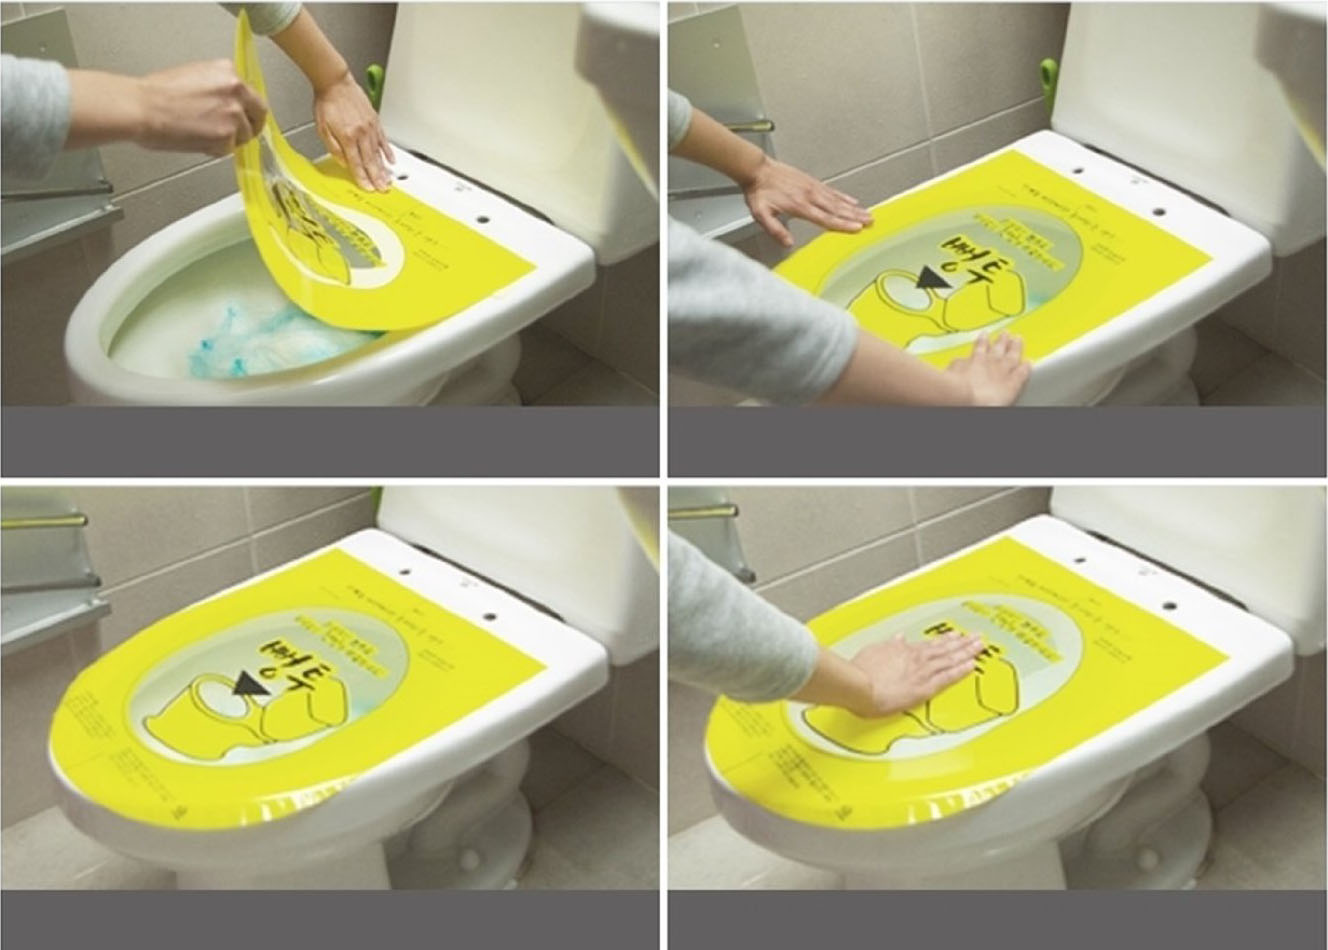 Bye Bye Plunger! Korean Inventors Introduce A Genius Toilet ...